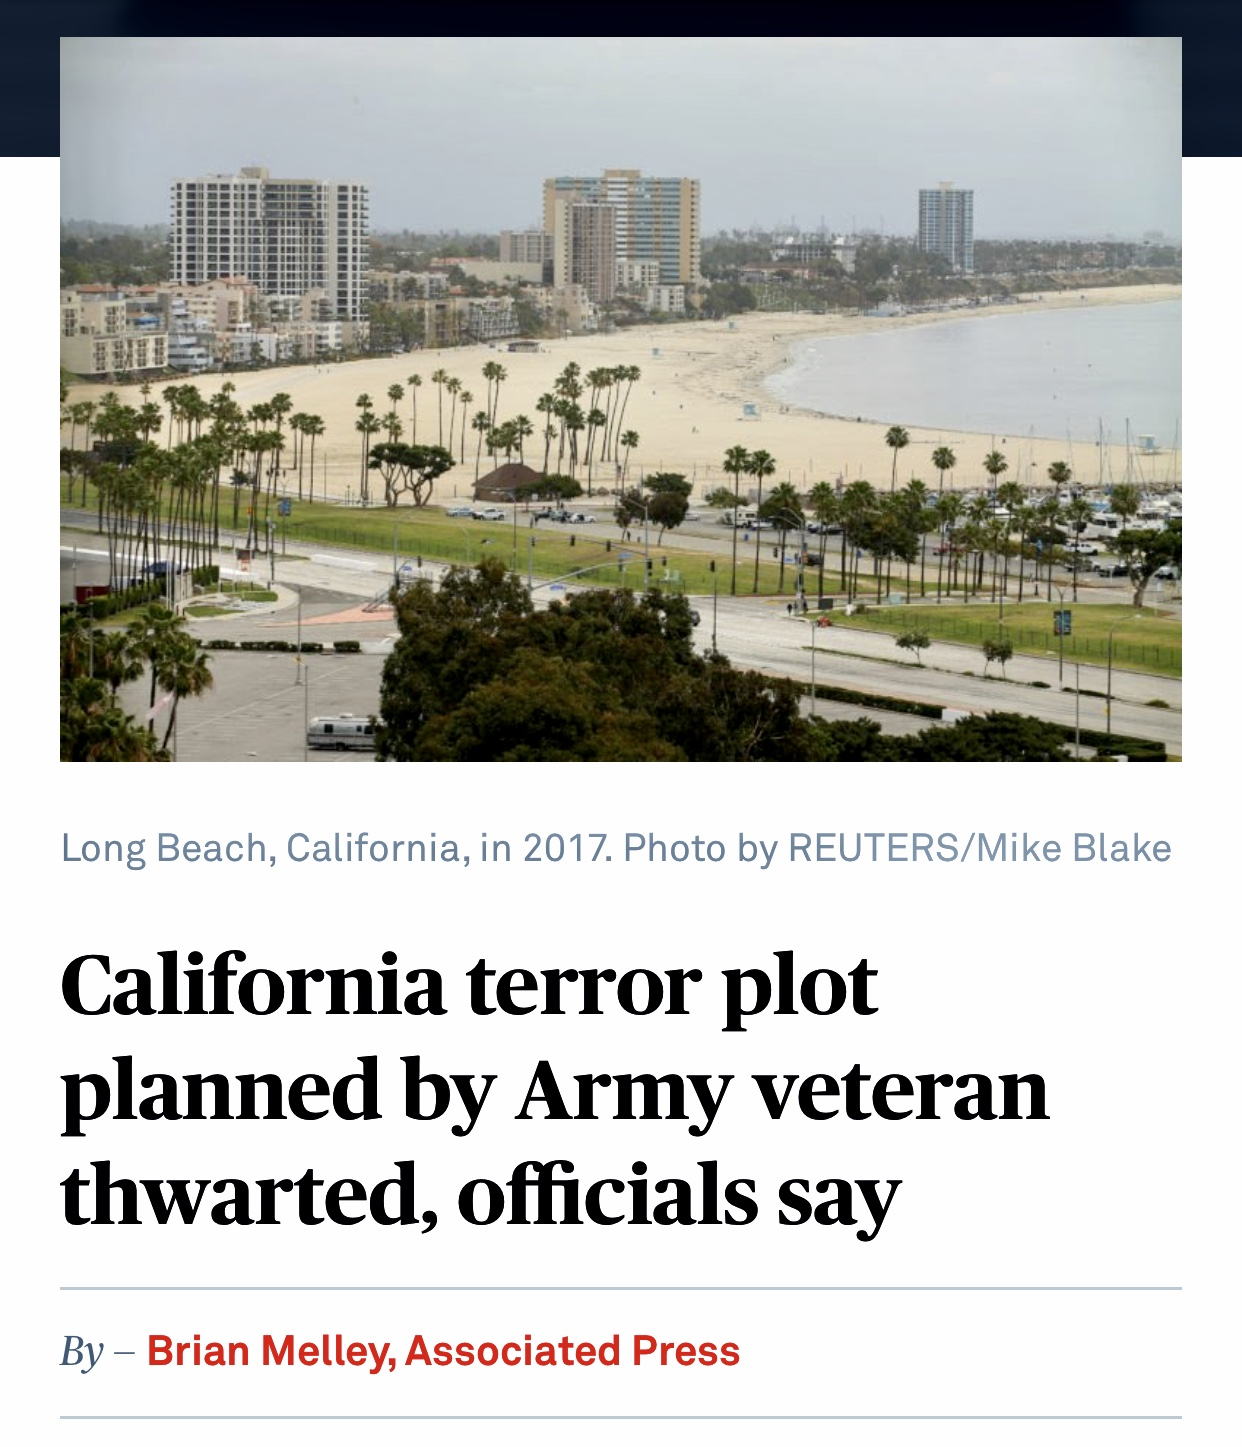 California terror plot planned by Army veteran thwarted, officials say | PBS NewsHour 650 Views